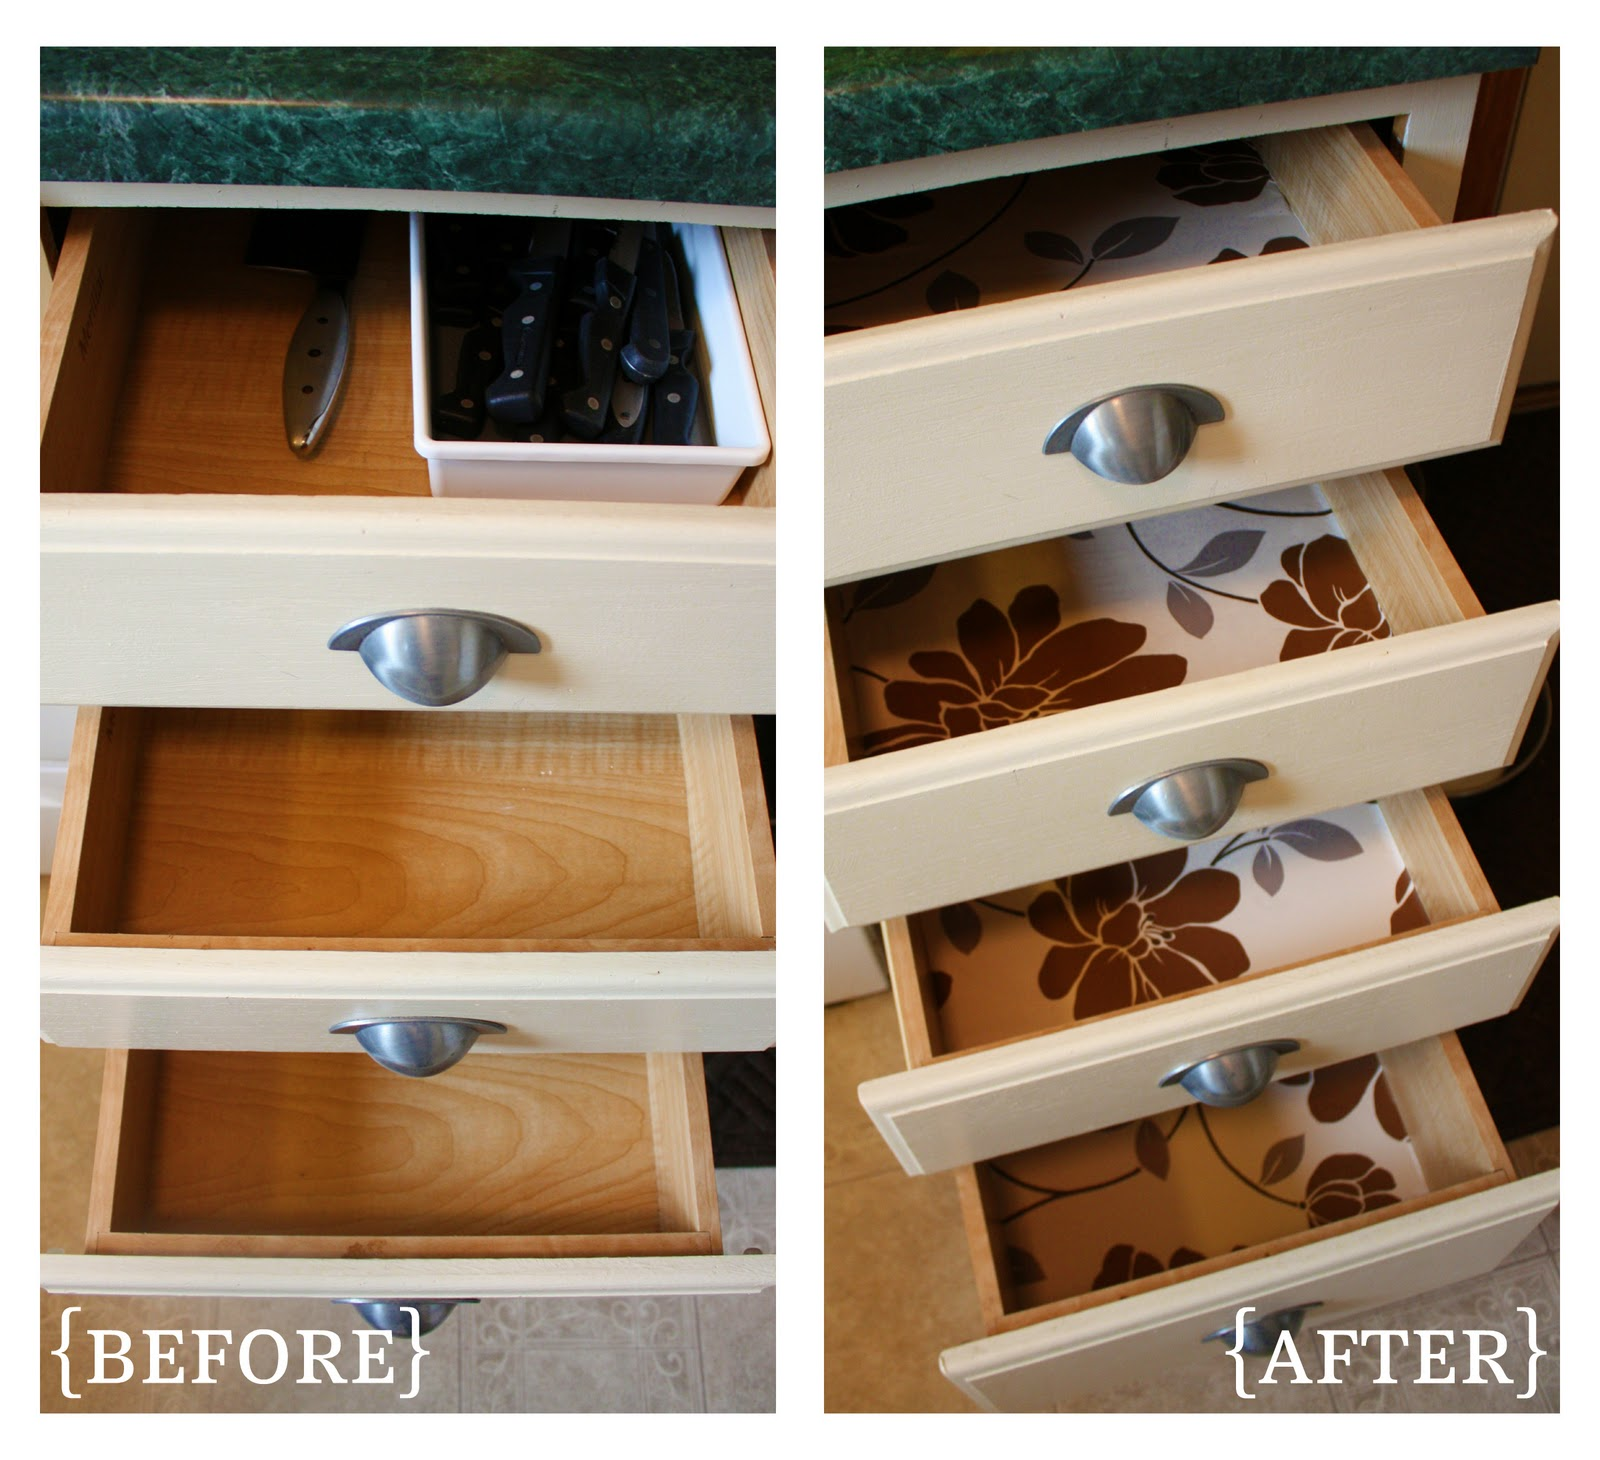 10 Tips For Perfectly Organized Kitchen Drawers The: IHeart Organizing: October Featured Space: Kitchen